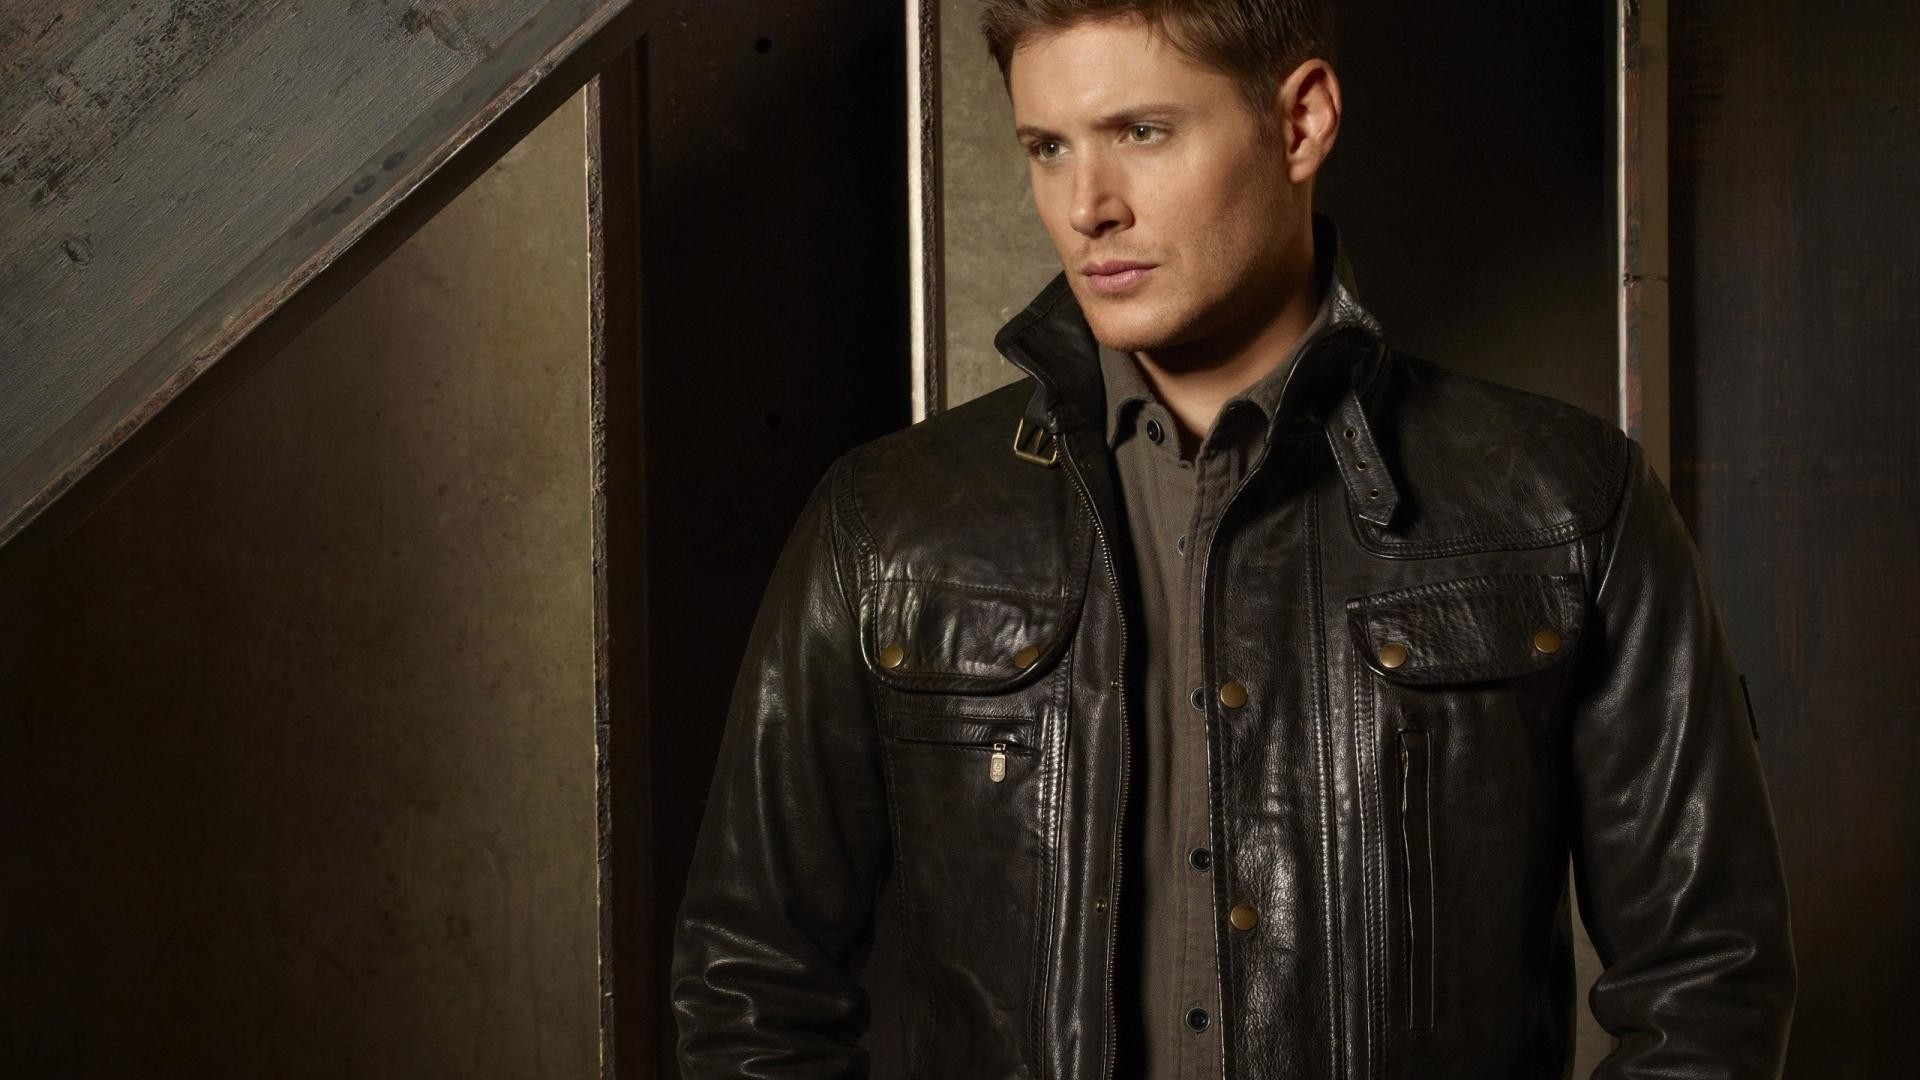 Jensen Ackles Wallpaper Download Full